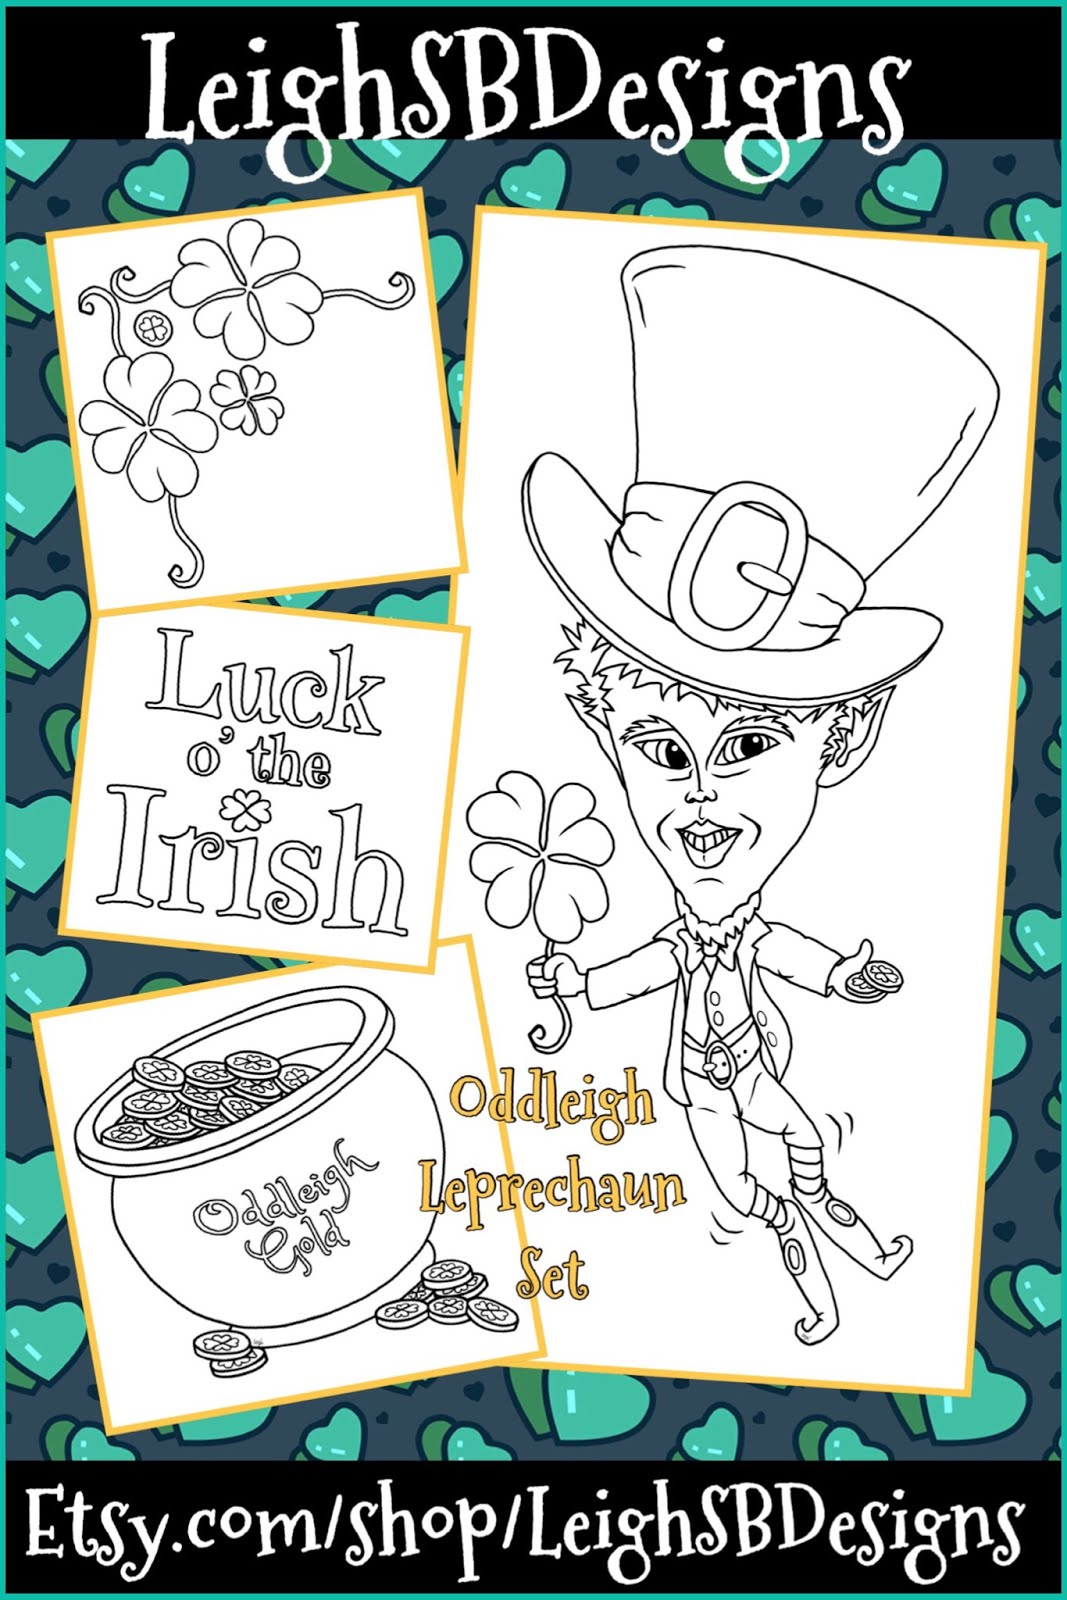 New March Release:  Oddleigh Leprechaun set!